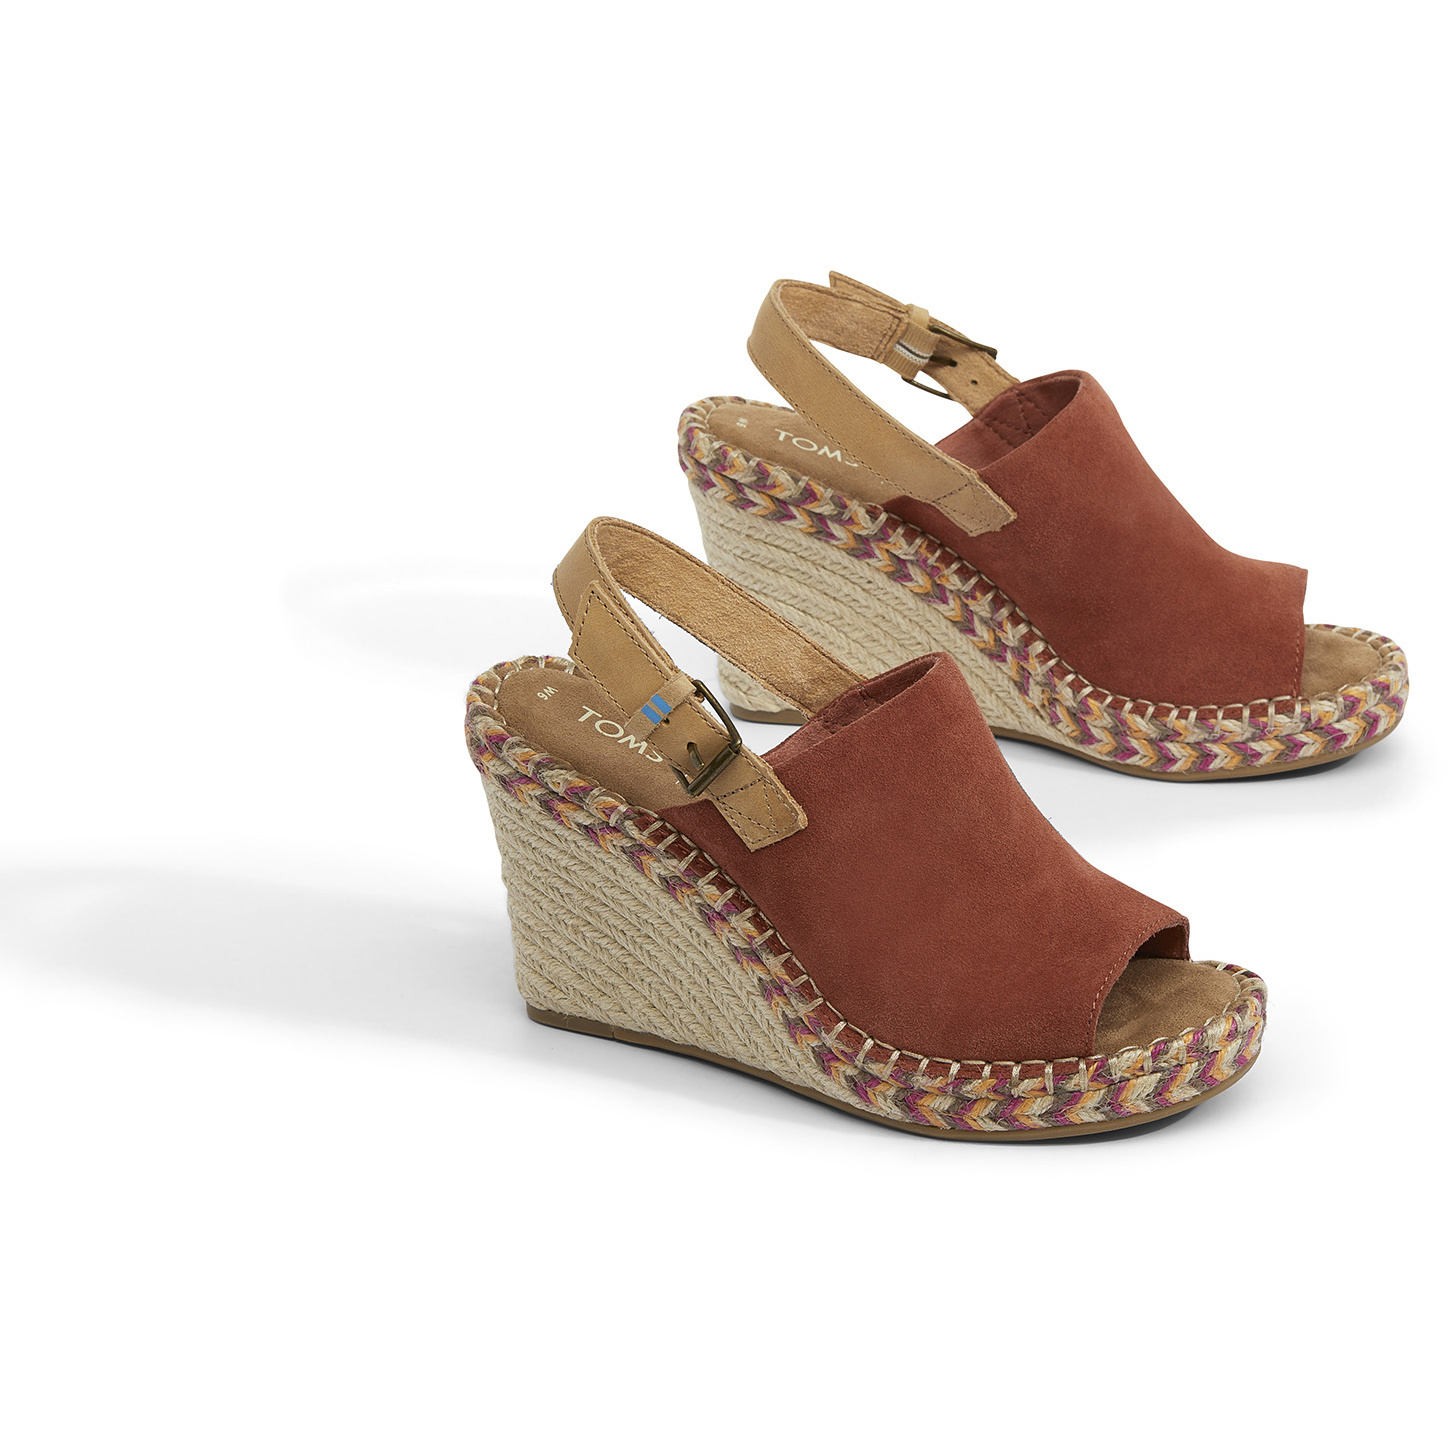 TOMS W's Monica Wedge, Spice Suede/Leather